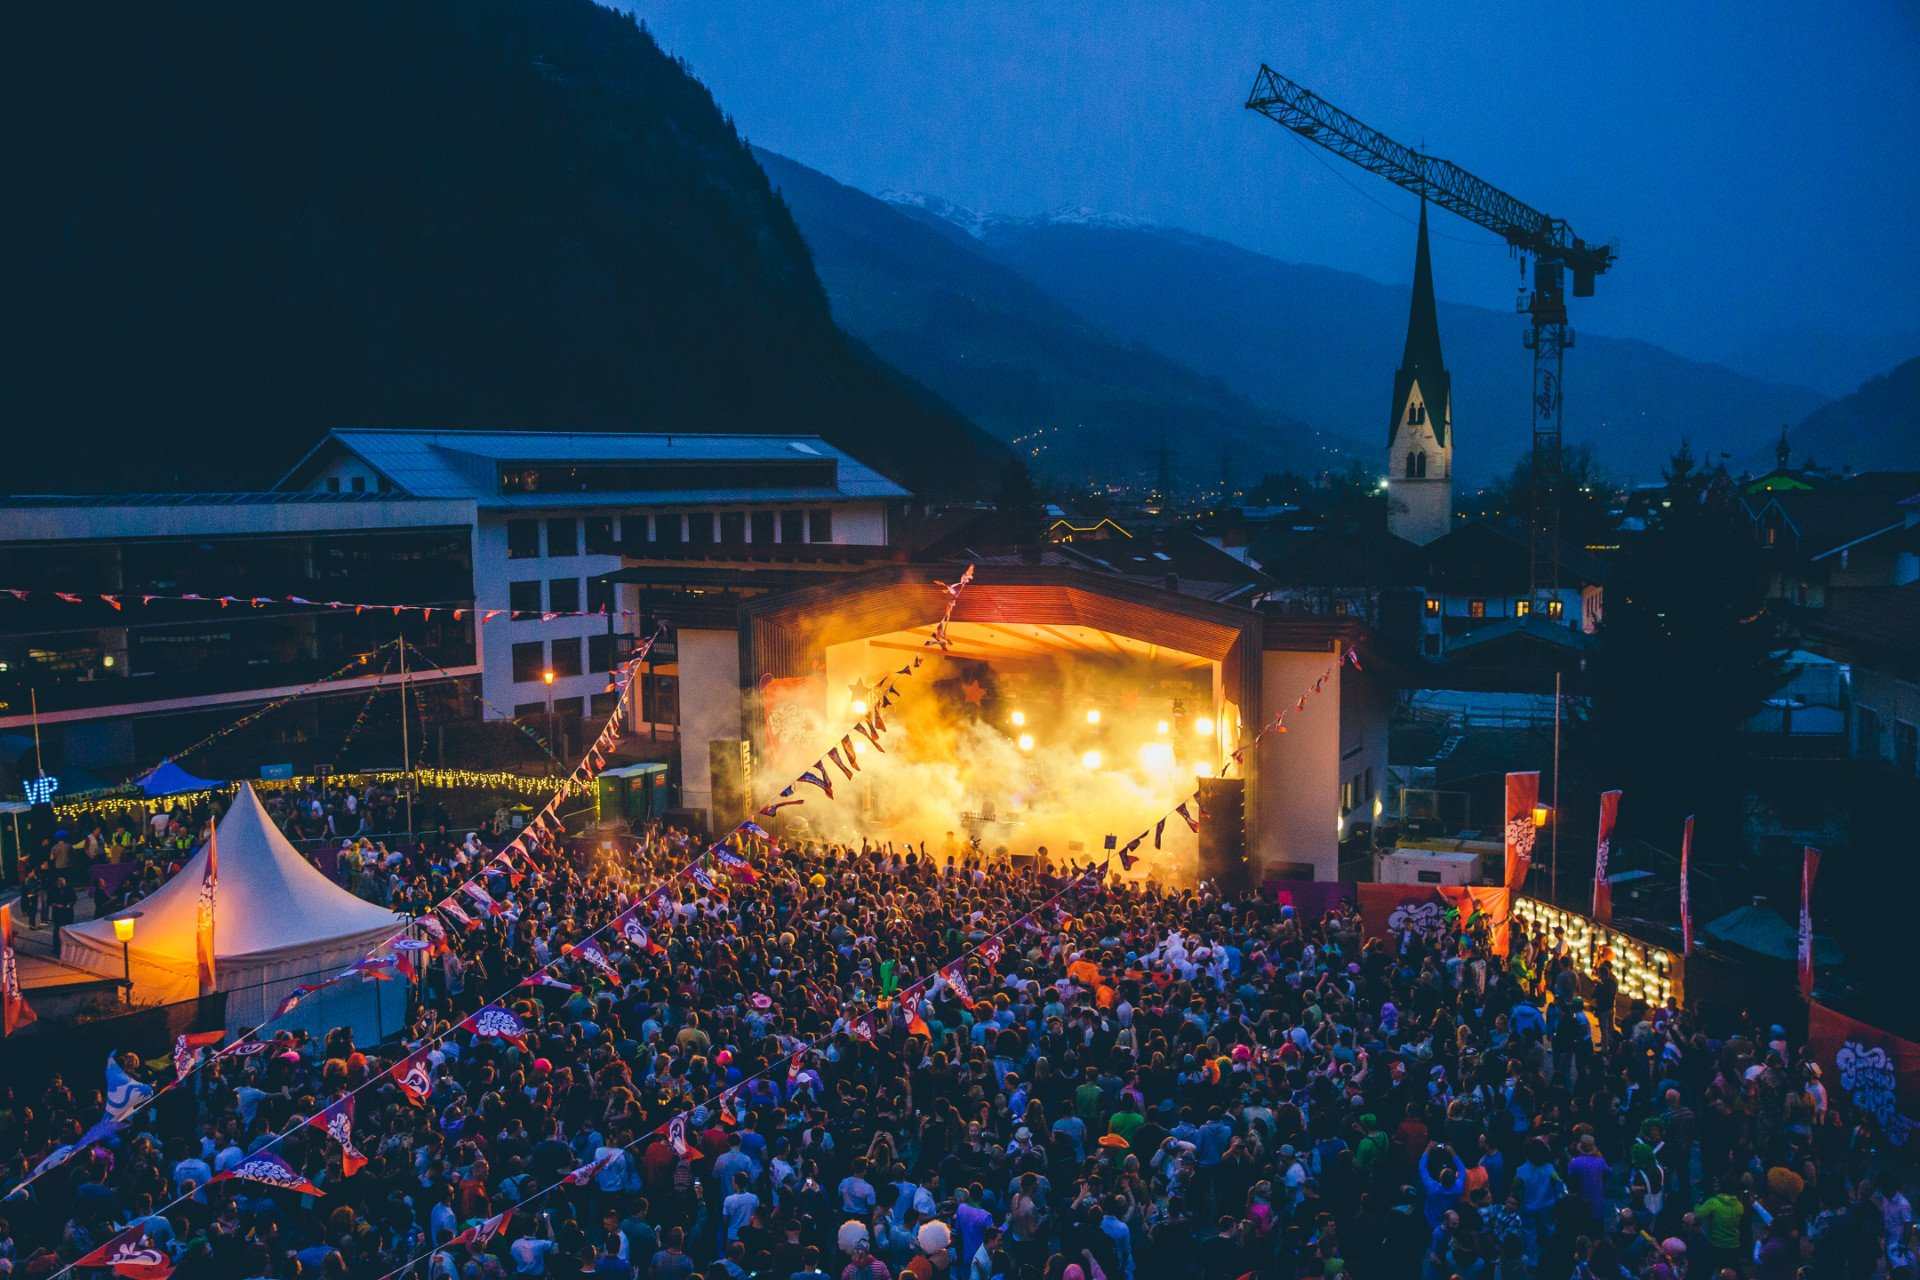 Snowbombing Festival in Austria 2019 - Best Time